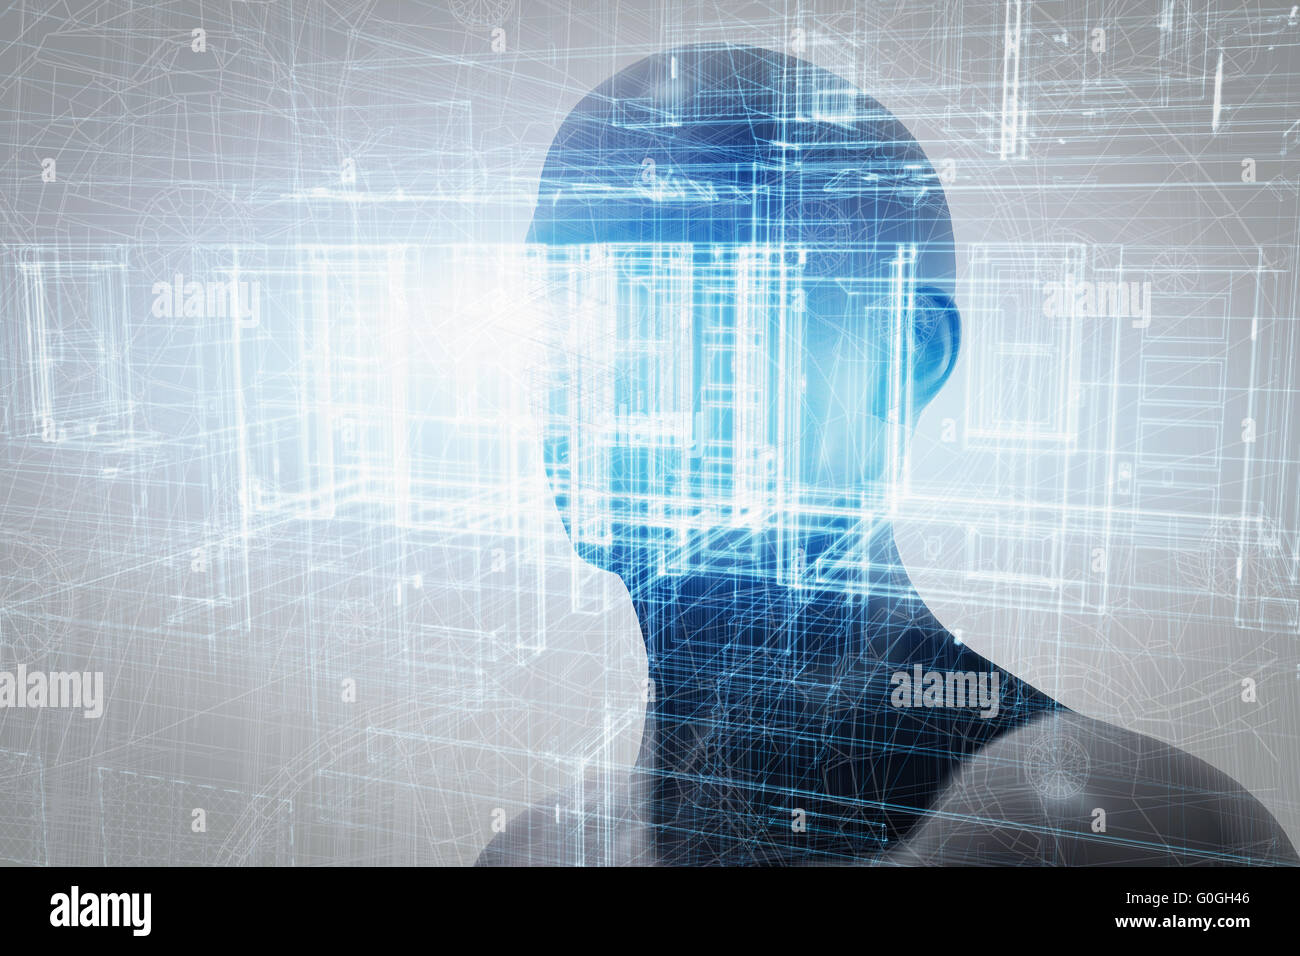 Virtual reality projection. Future science with modern technology, artificial intelligence - Stock Image